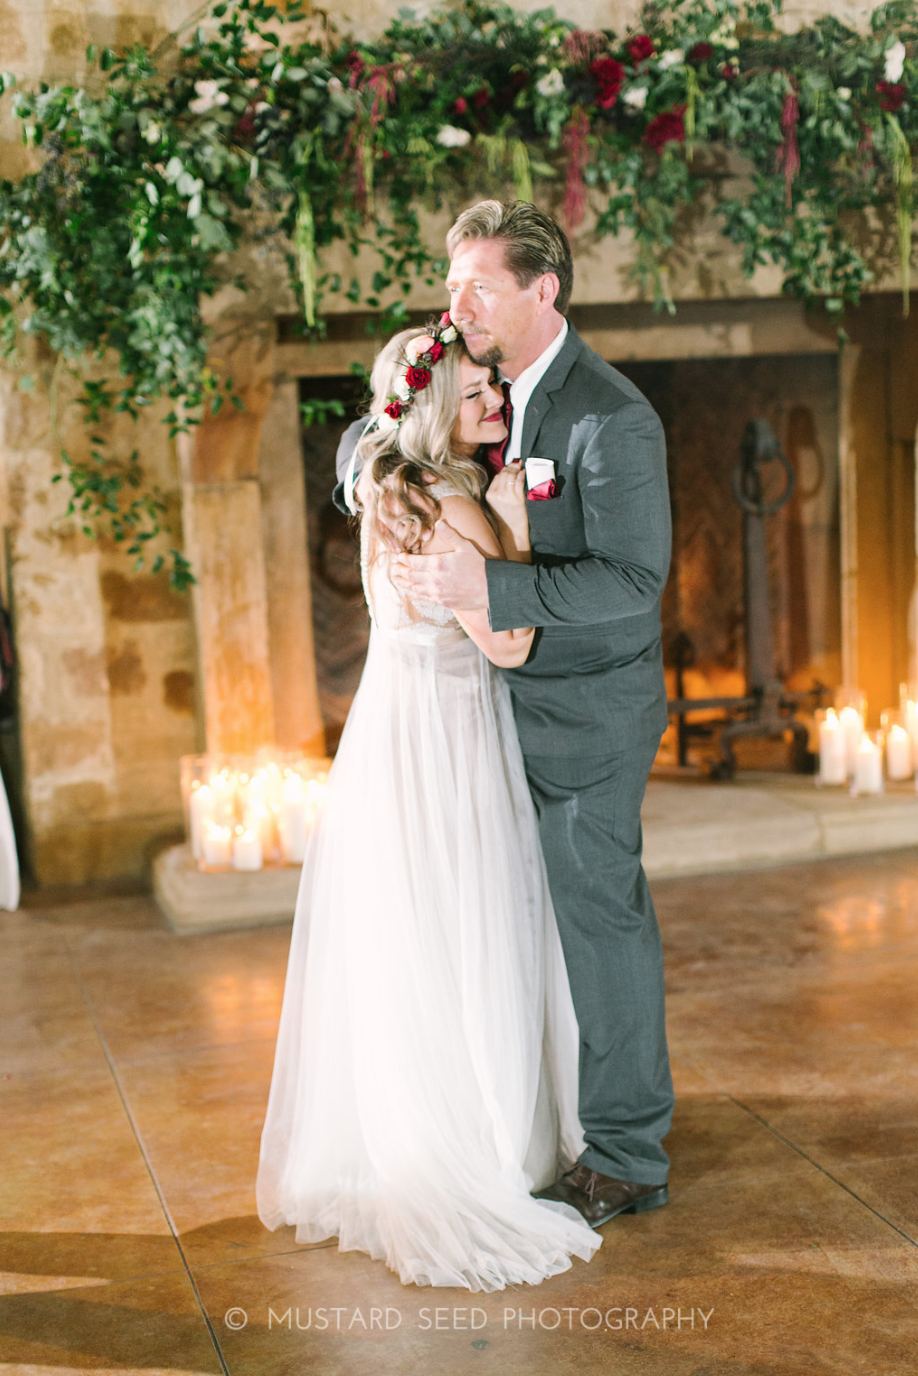 Sweet moment between daughter and father. Fireplace florals by maxit flower design in houston, tx